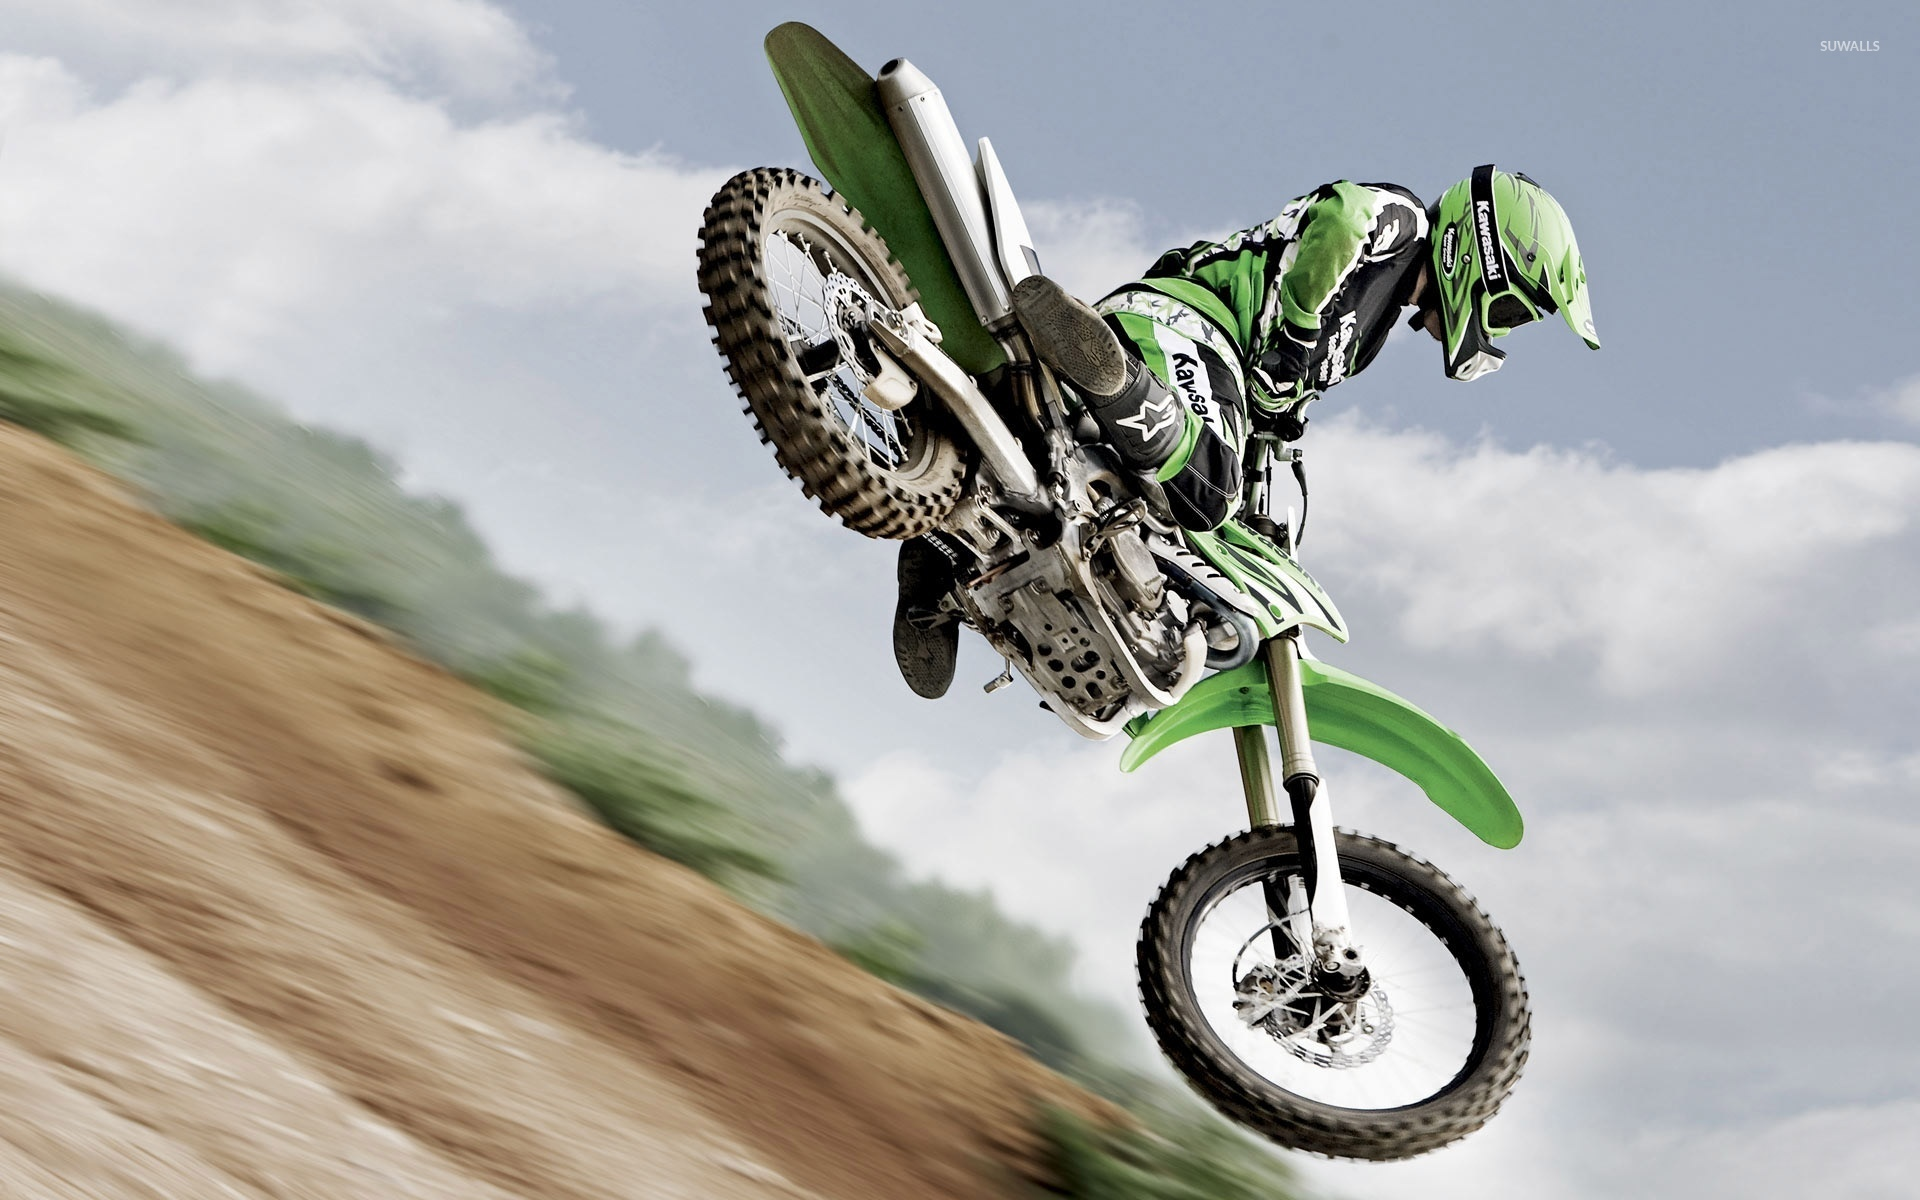 Kawasaki Kx450f Wallpaper Motorcycle Wallpapers 23892